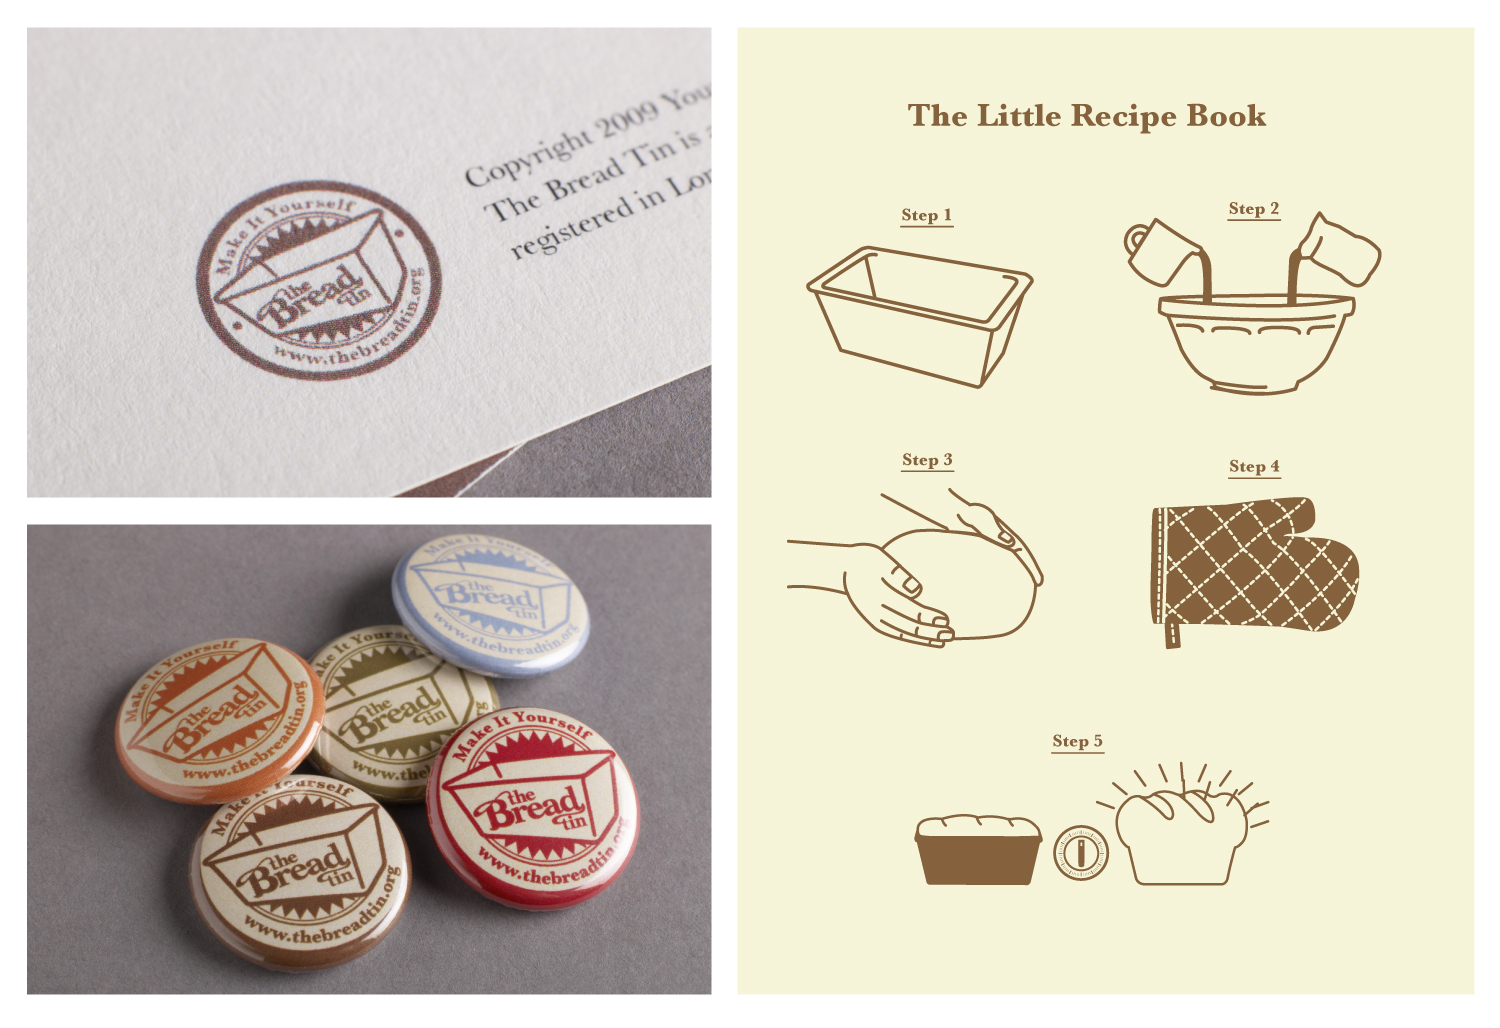 A stamp was created that appeared on letterheads and promotional badges. The illustration style was one that would not look out of place in a cook book, and was designed to help describe the process to potential clients.